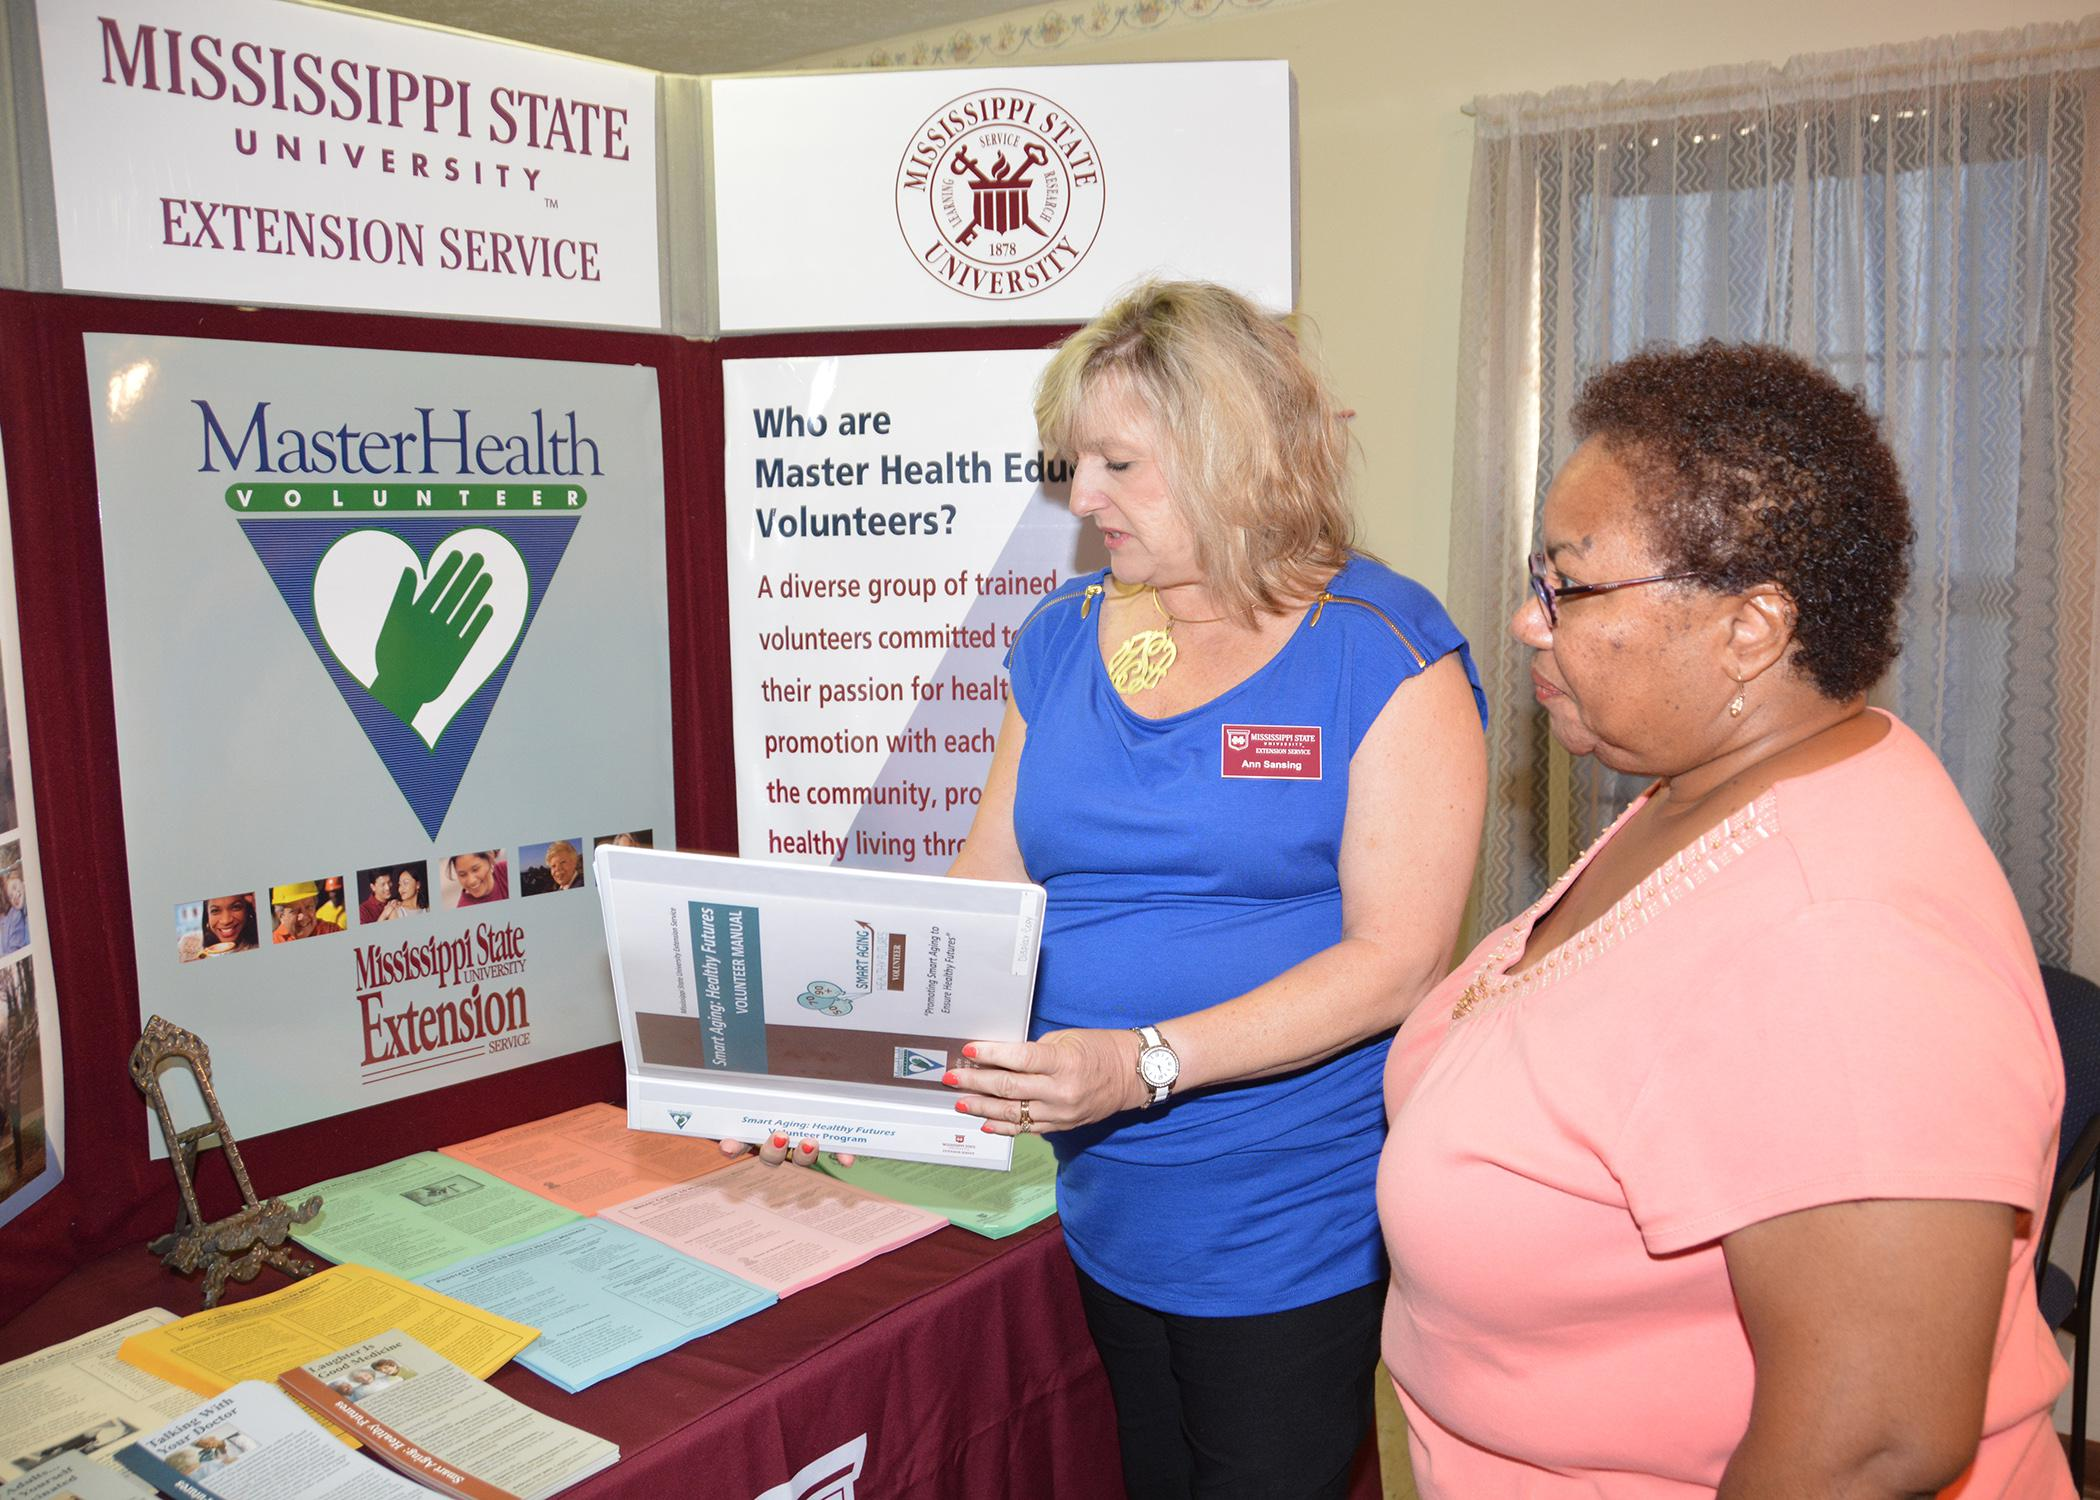 Mississippi State University Extension community health coordinator Ann Sansing reviews some of the Master Health Volunteer educational material with Annie Williams at the one-year anniversary celebration of the John Wesley Health Education Center in Durant, Mississippi, on July 25, 2014. (Photo by MSU Ag Communications/Linda Breazeale)